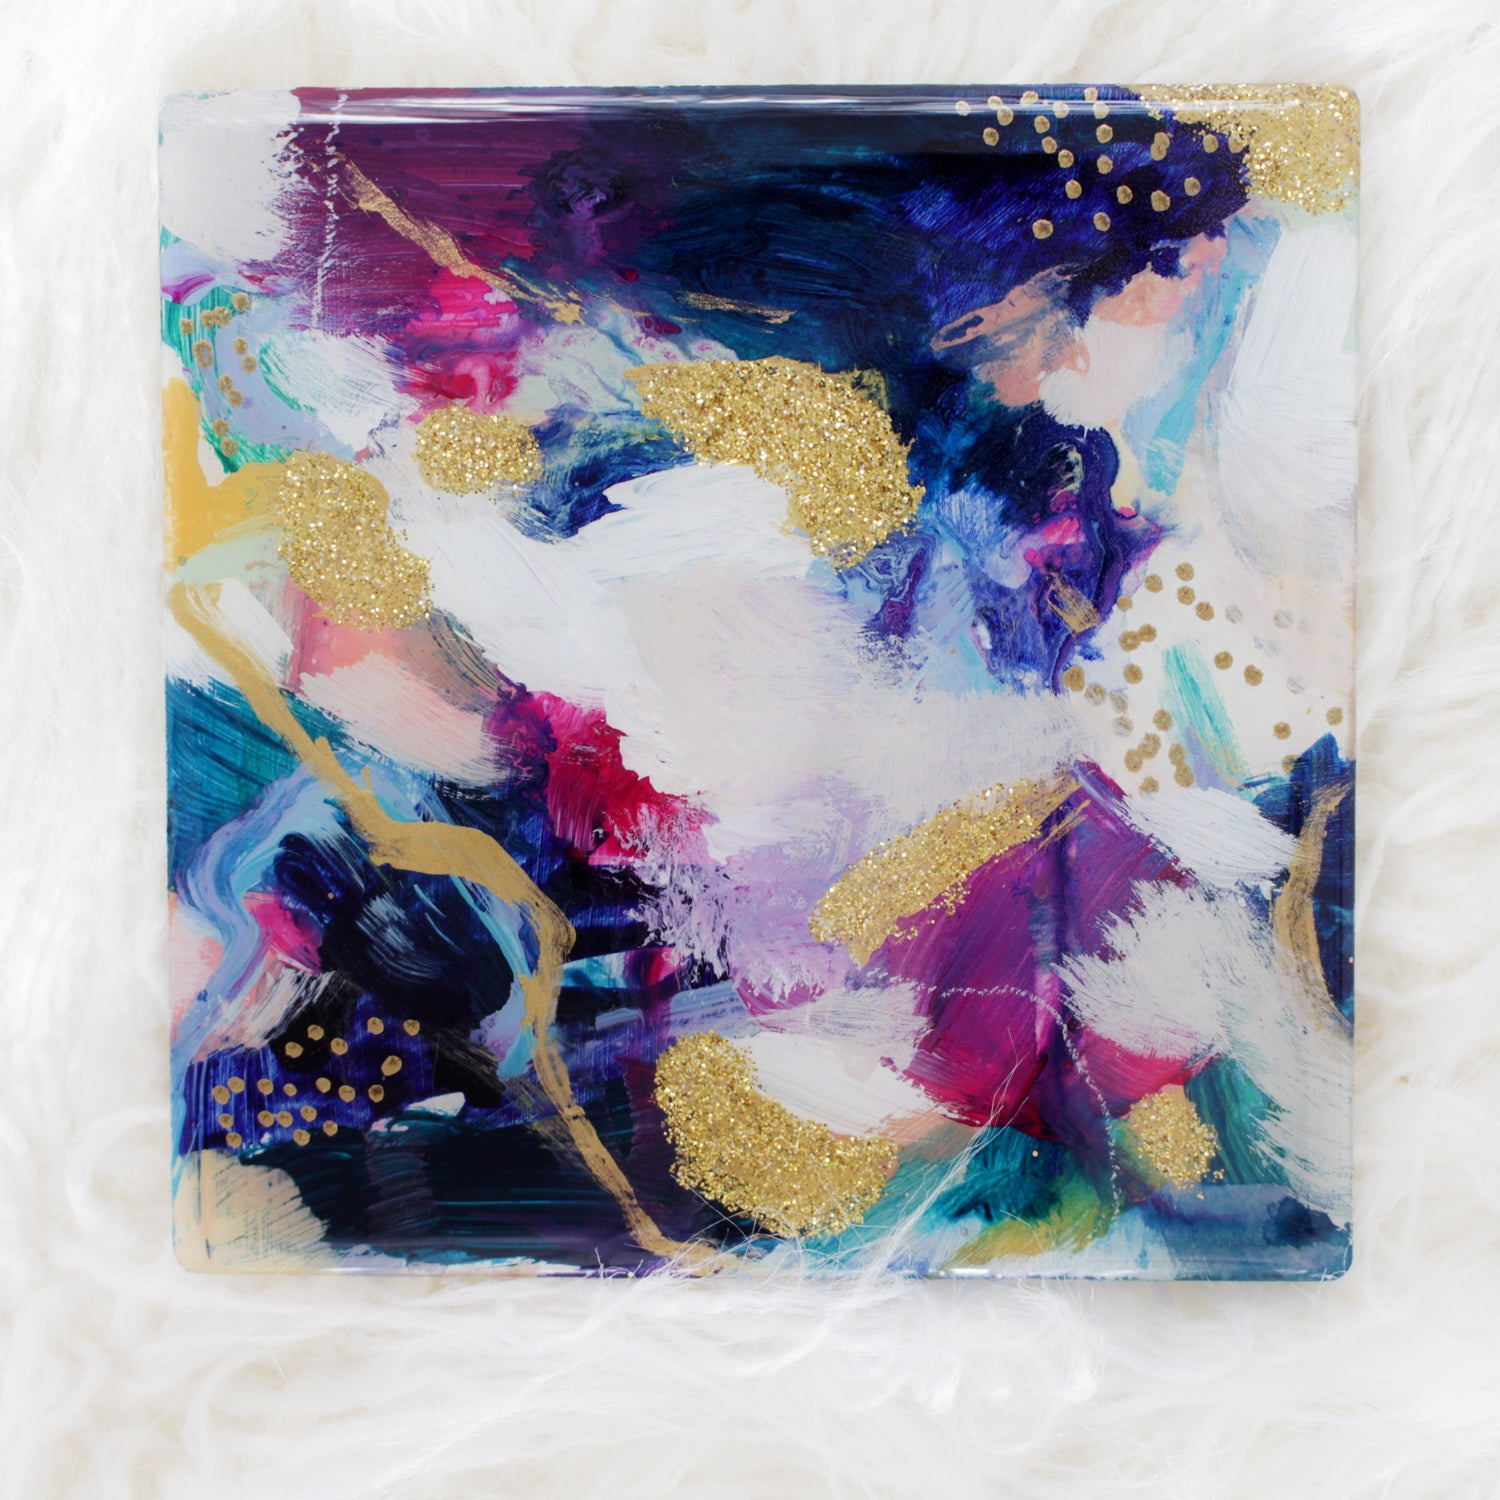 Ceramic No.1 by Parima Studio. Small abstract painting. Acrylic, gold glitter on uncoated ceramic and sealed with resin.